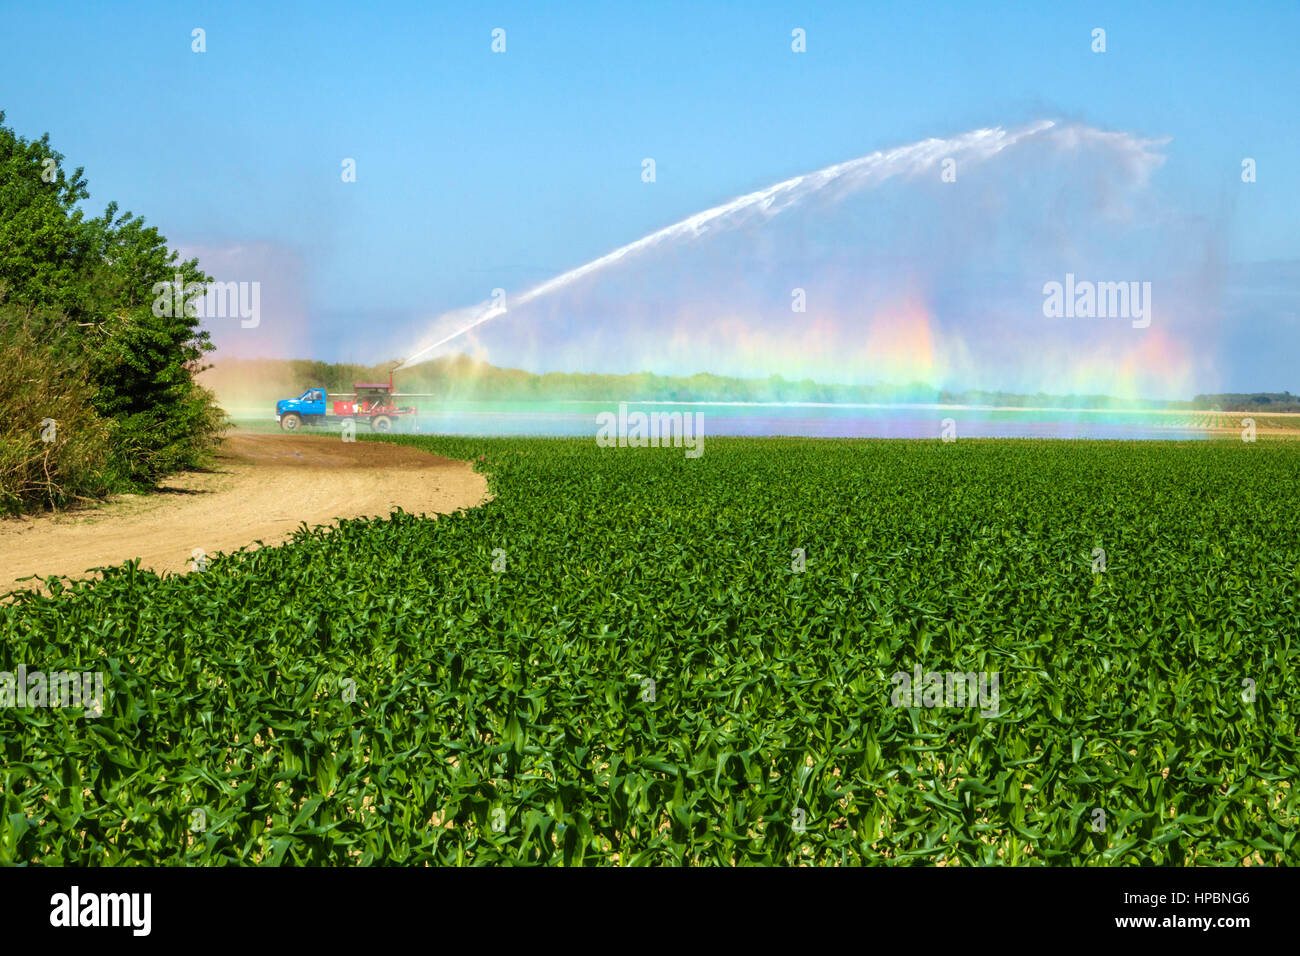 Homestead Florida Redland agriculture field irrigation system watering corn crop rainbow - Stock Image